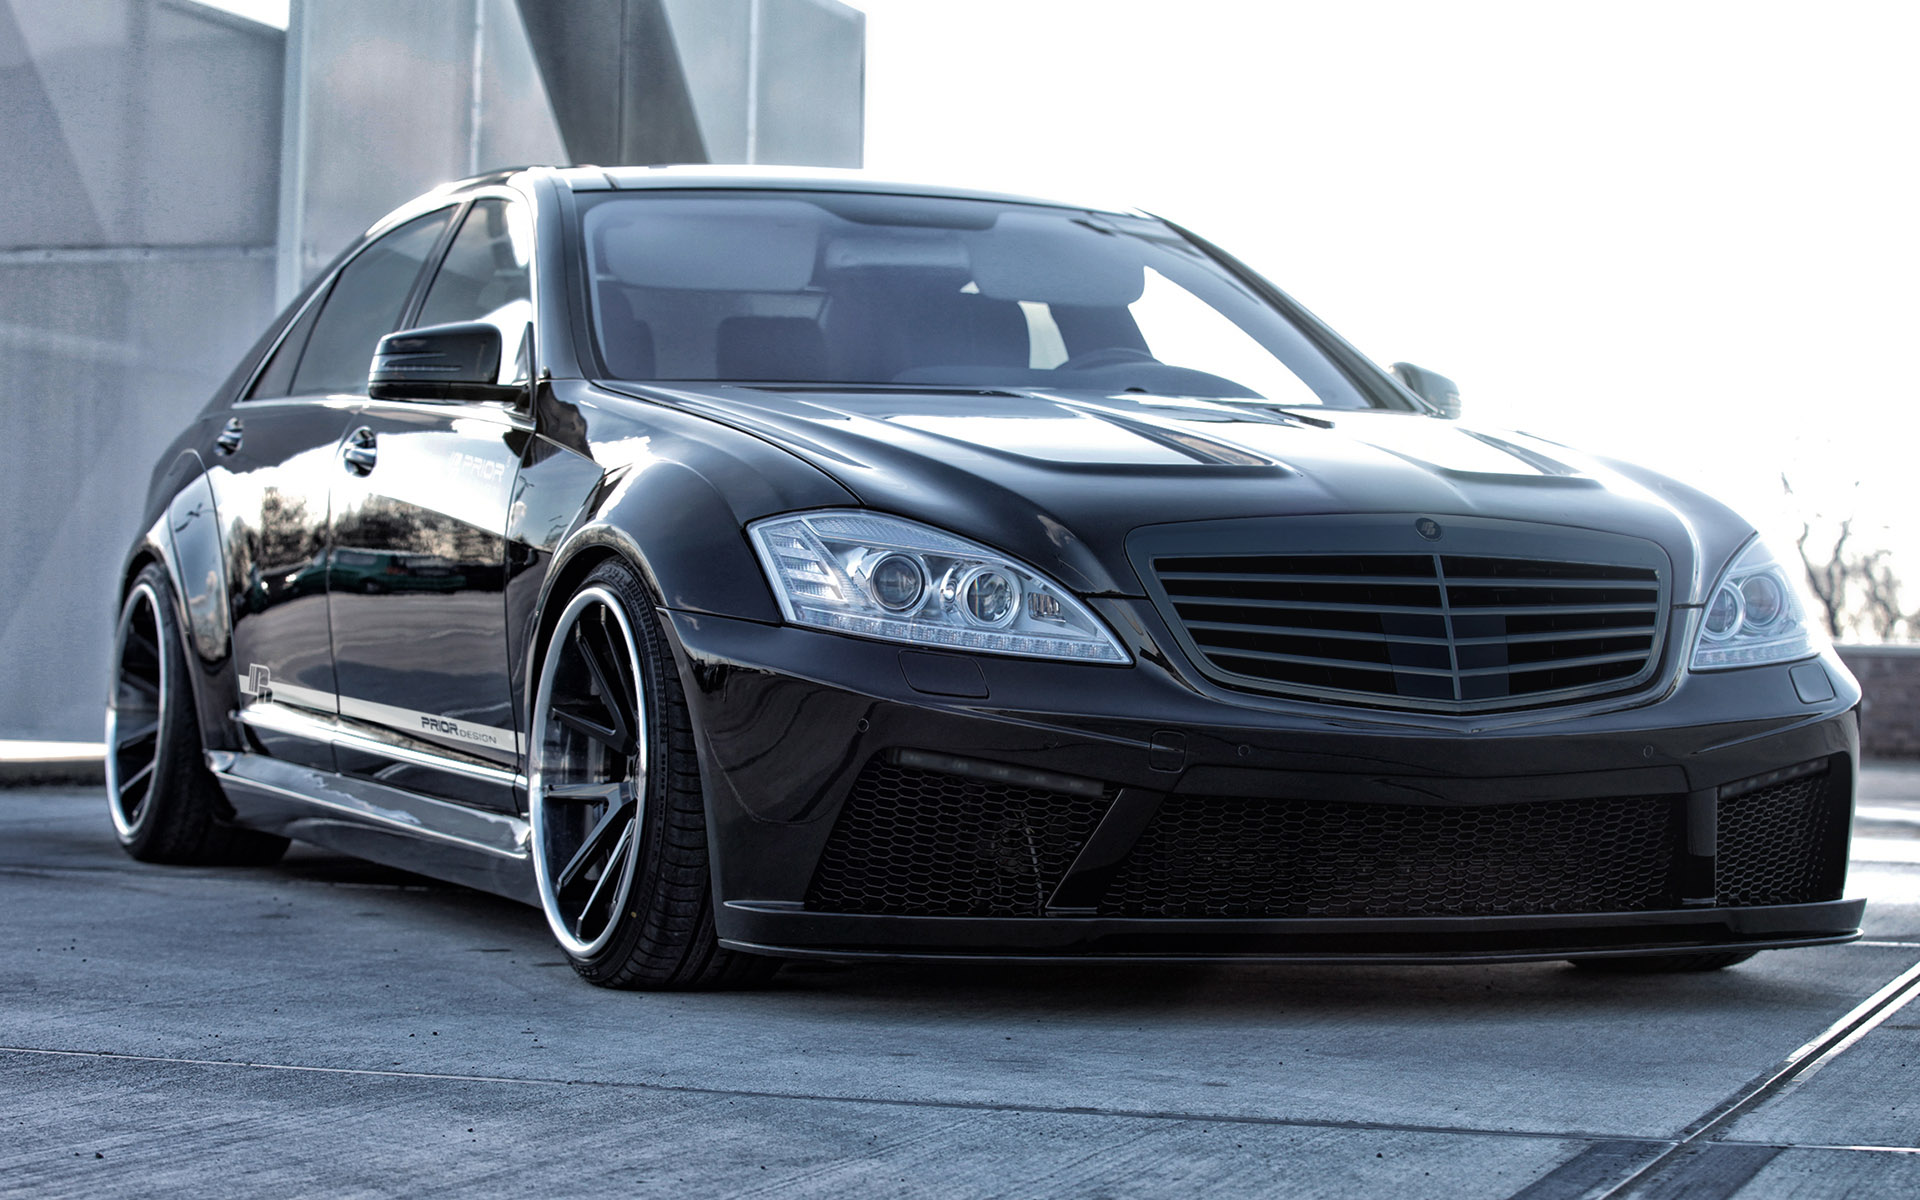 2014 prior design mercedes classe s w221 bodykit dark cars wallpapers. Black Bedroom Furniture Sets. Home Design Ideas